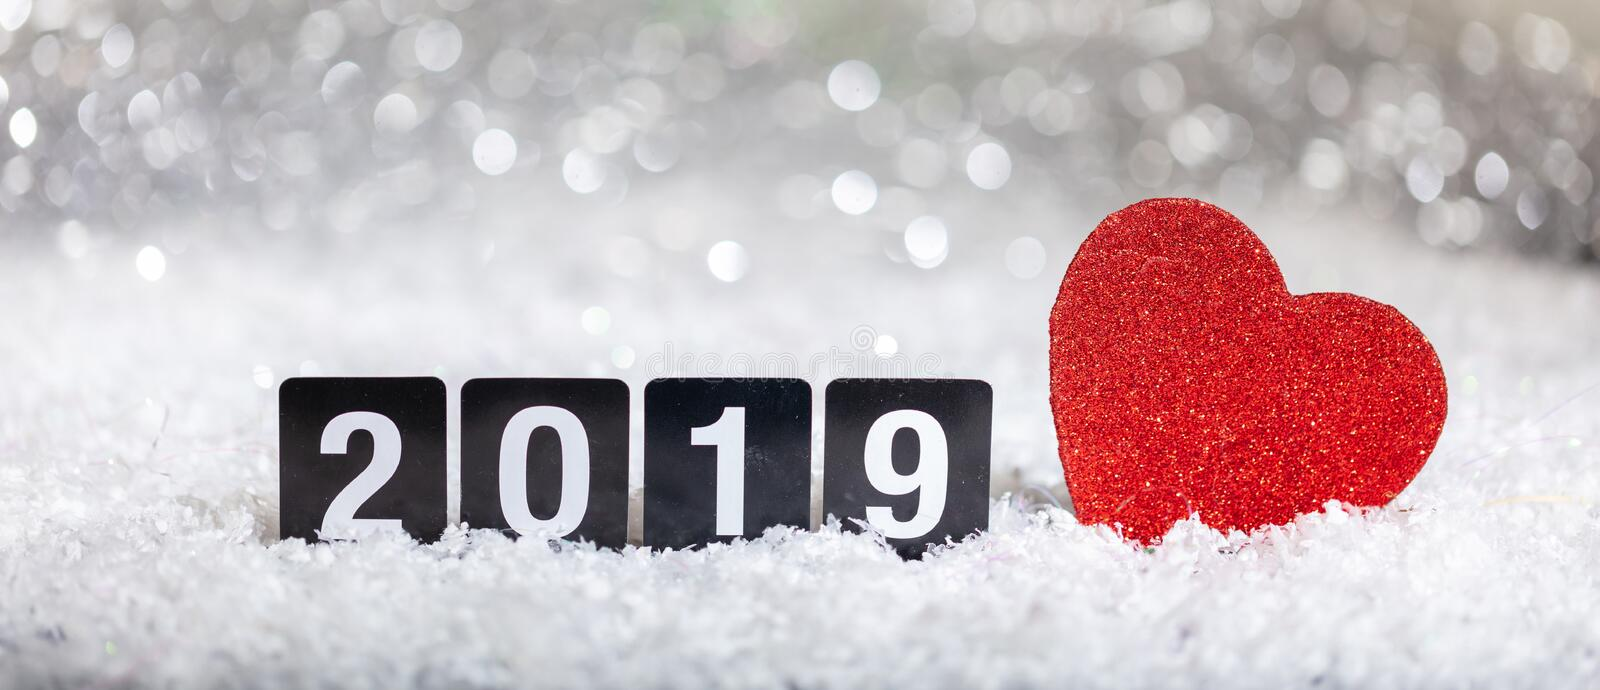 New year 2019 and a red heart on snow, abstract bokeh lights royalty free stock image